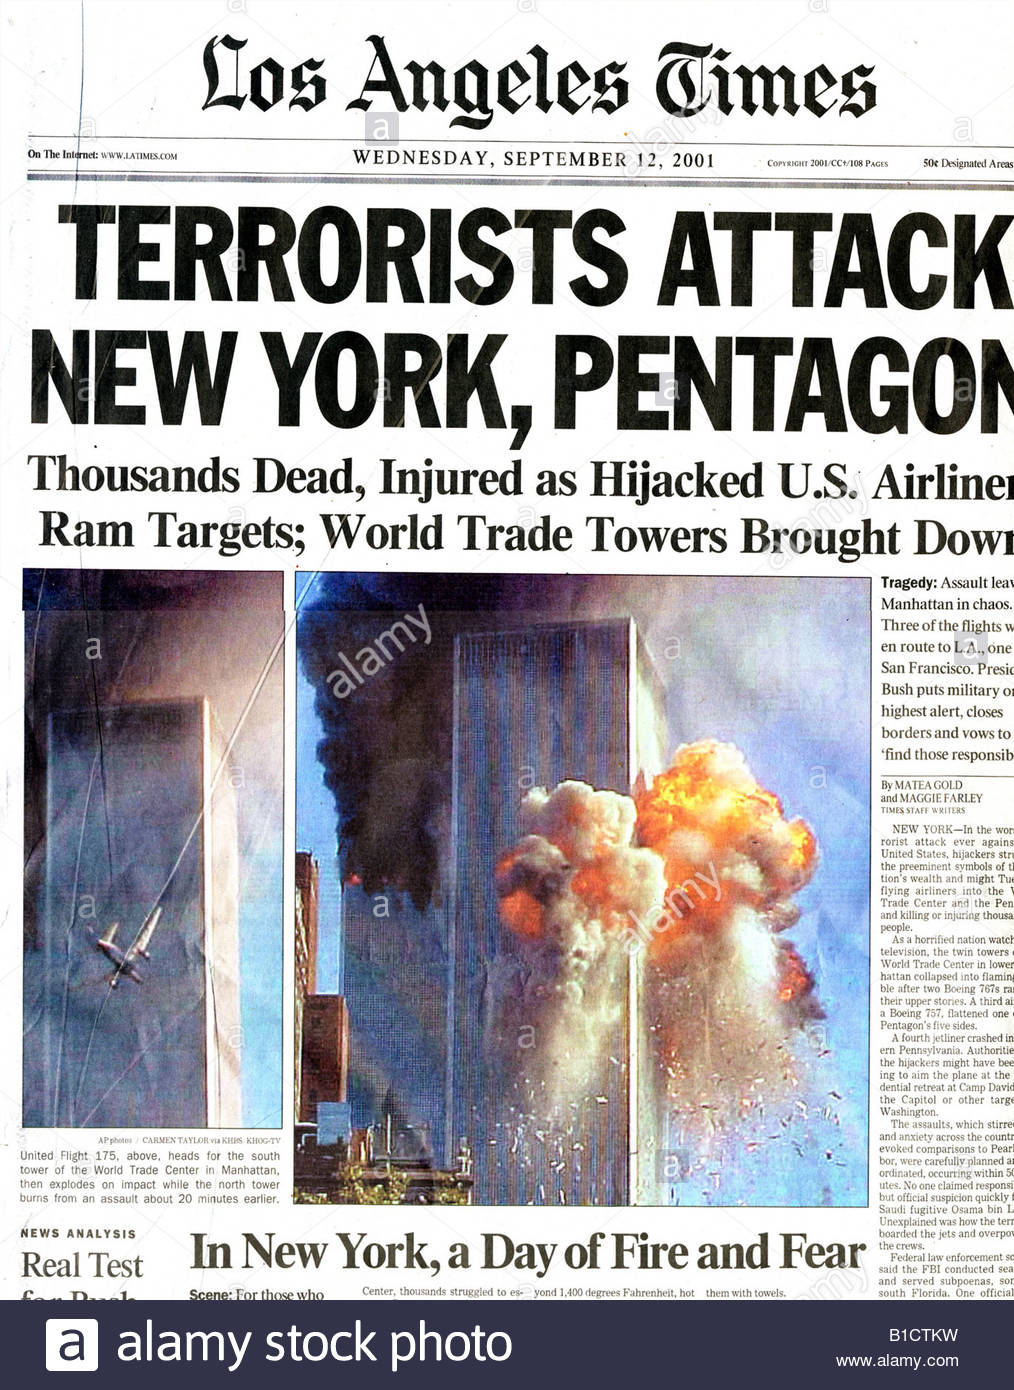 911 terrorist attacks essay Free essay: terrorist attacks on 9/11 case study the attacks of 9/11 changed the way that the world, and especially the united states, views and reacts to.